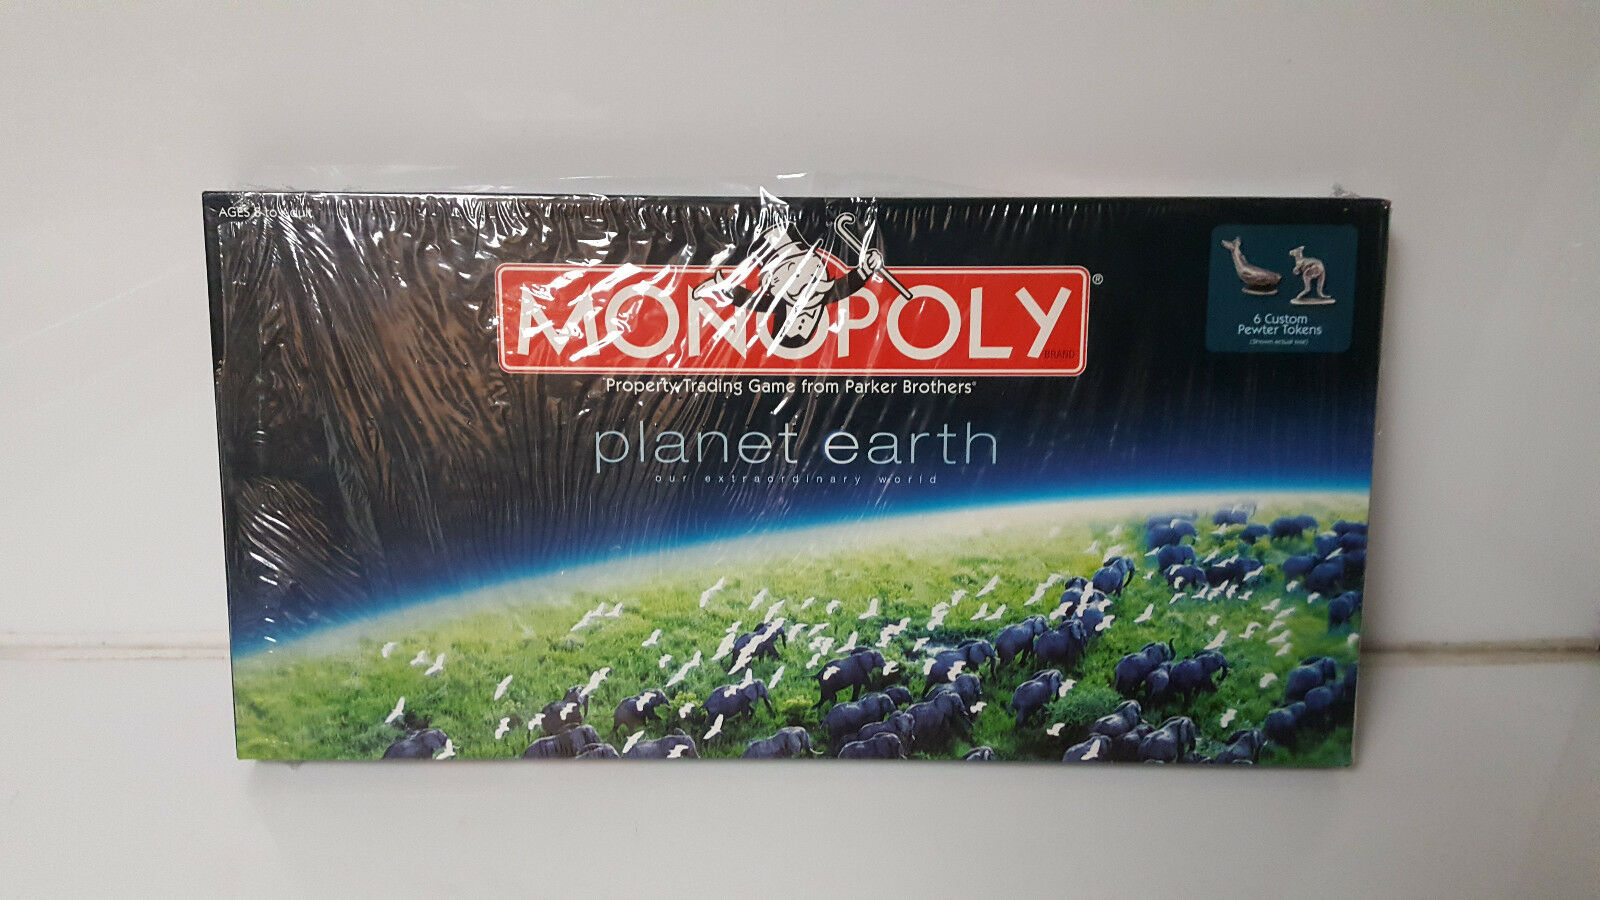 Monopoly Planet Earth new but cellophane is coming off